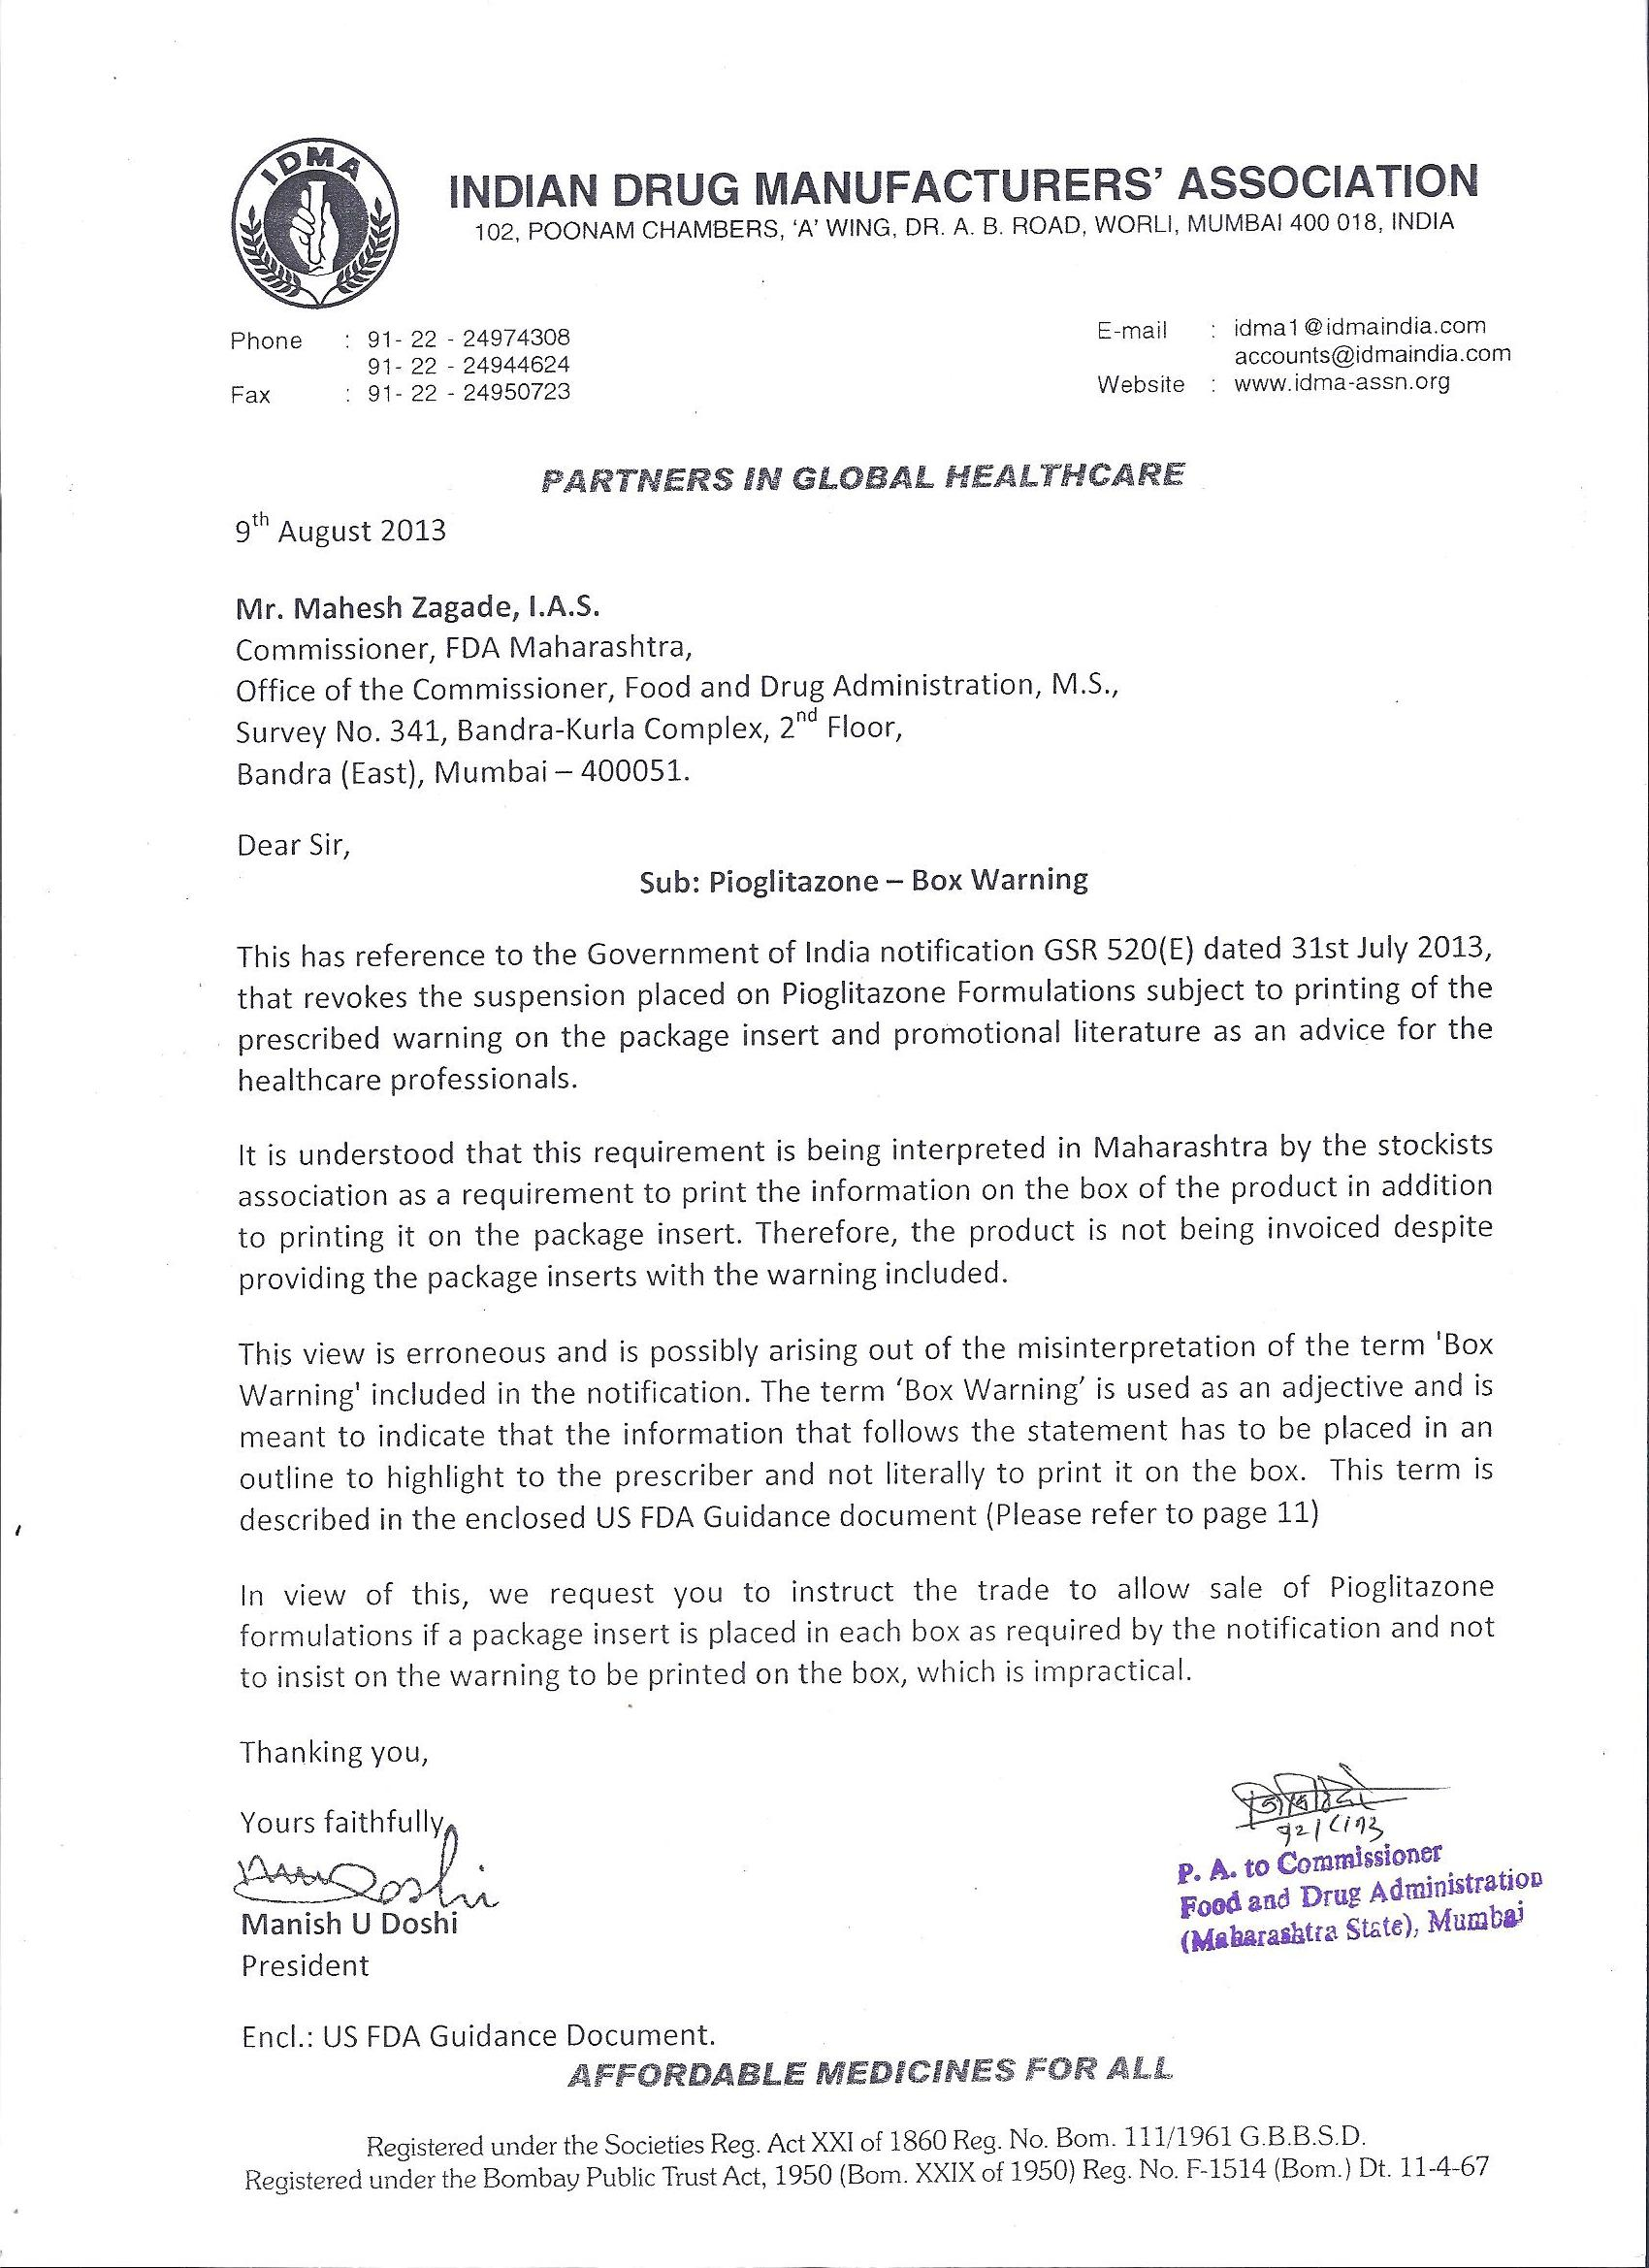 Actos Warning Letter